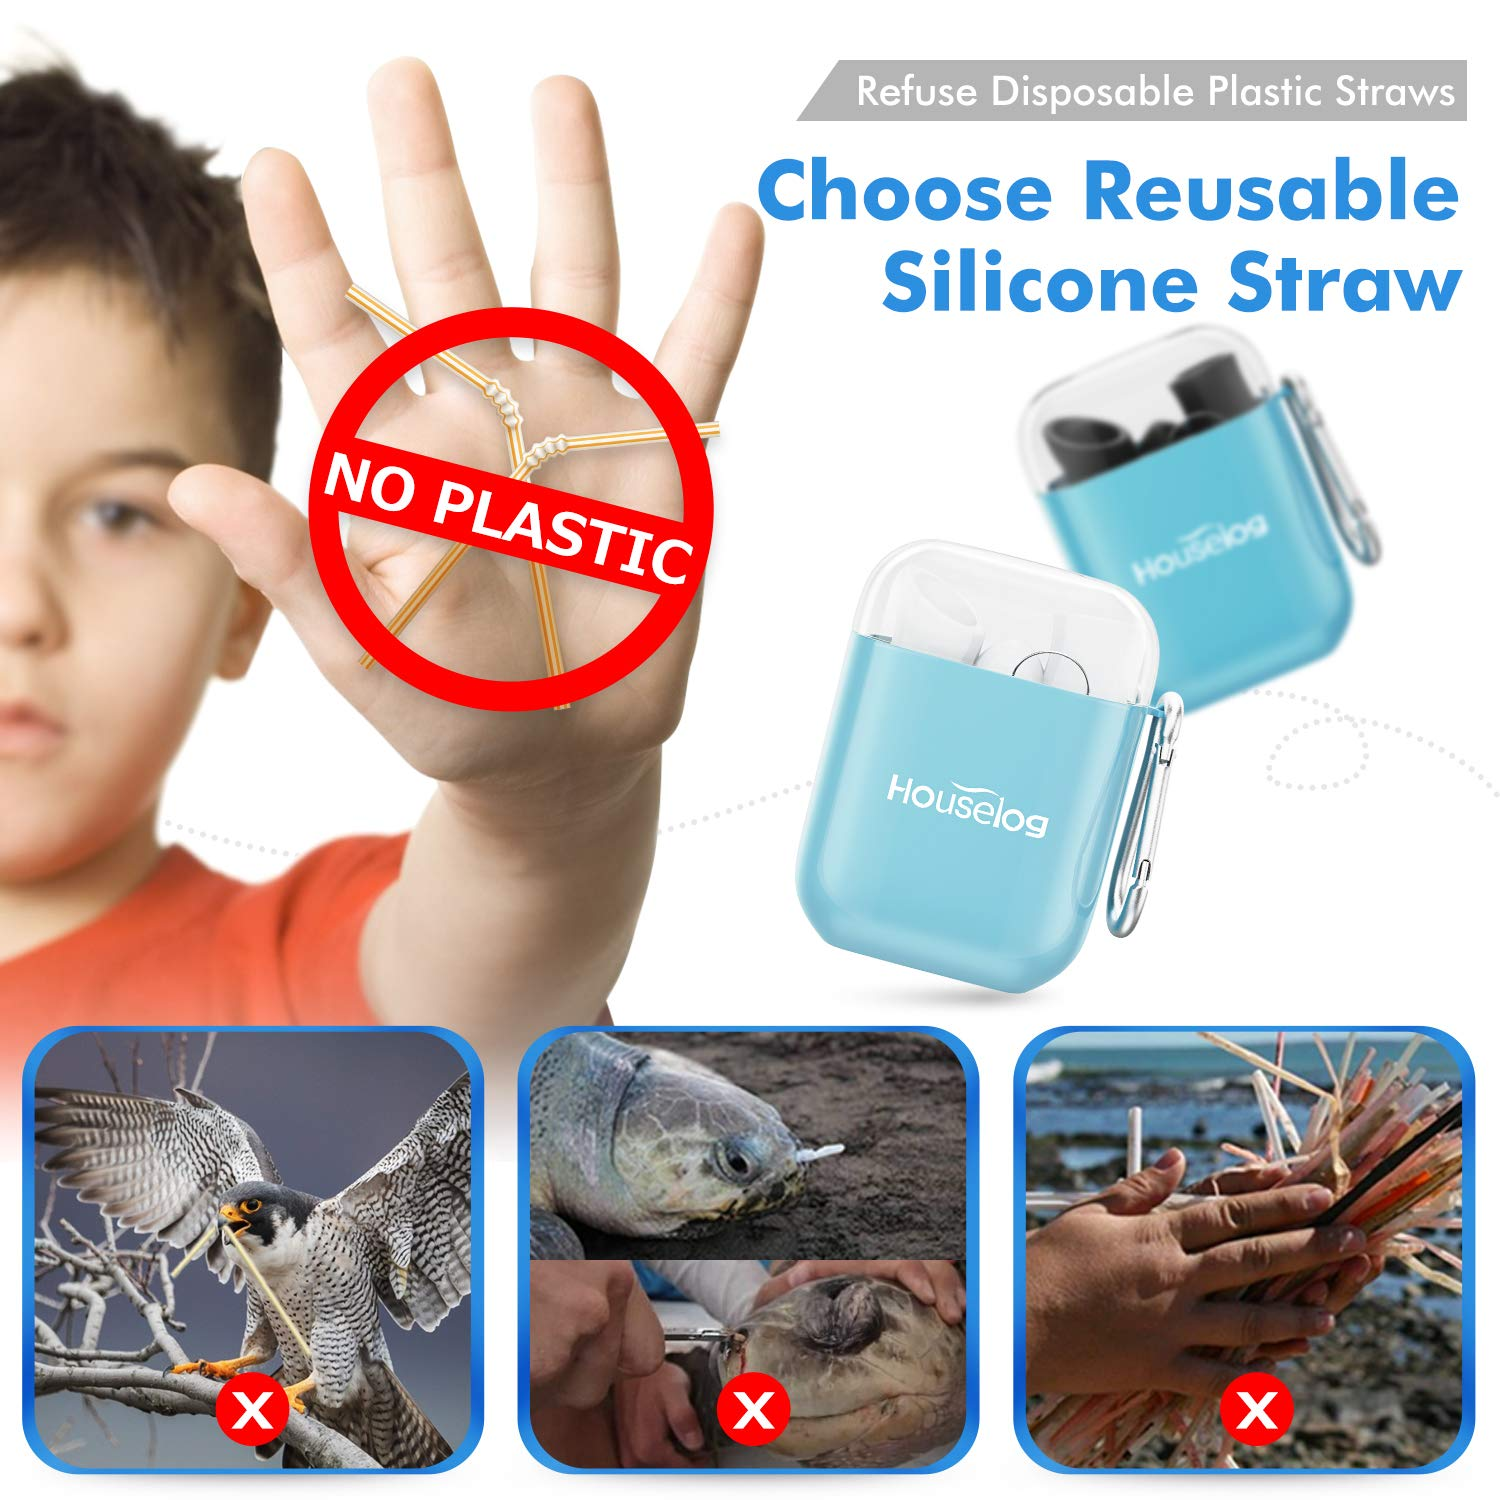 Houselog Silicone Straws,Big Size Reusable Collapsible Straw Foldable Portable Tube with Cleaning Brush for Drinking and Yogurt 2PCS